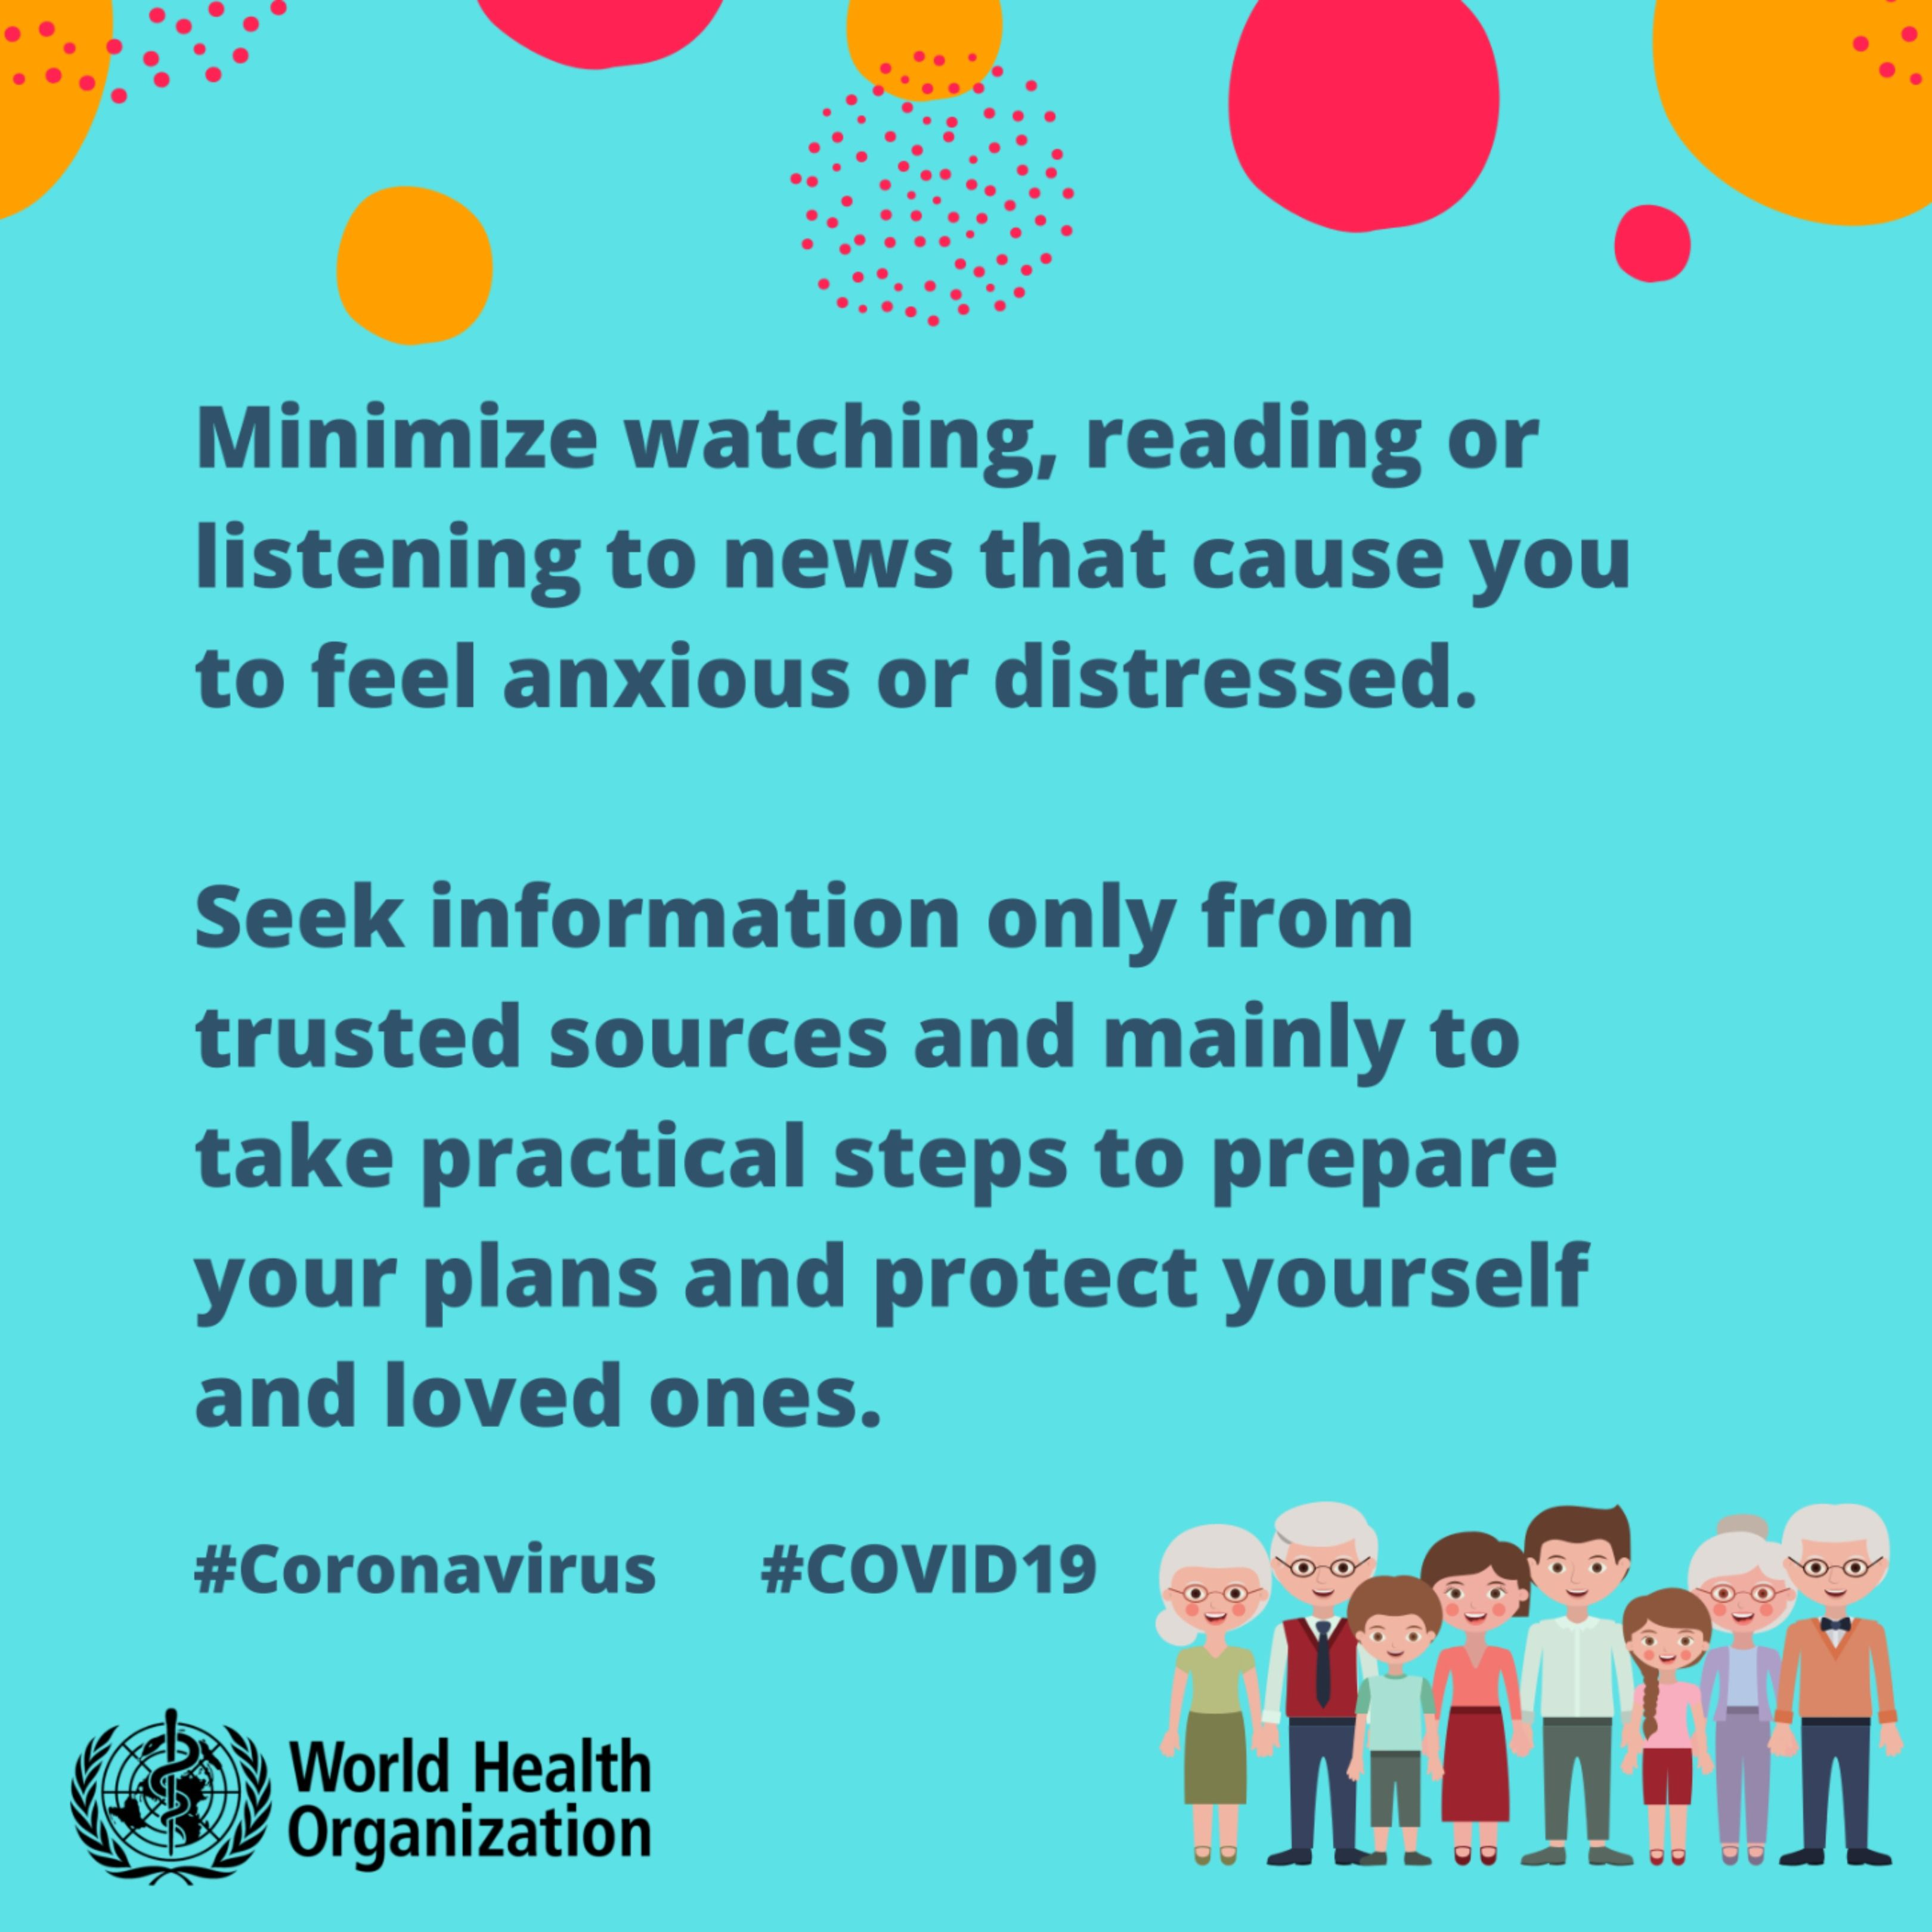 Minimize watching, reading or listening to COVID19 news